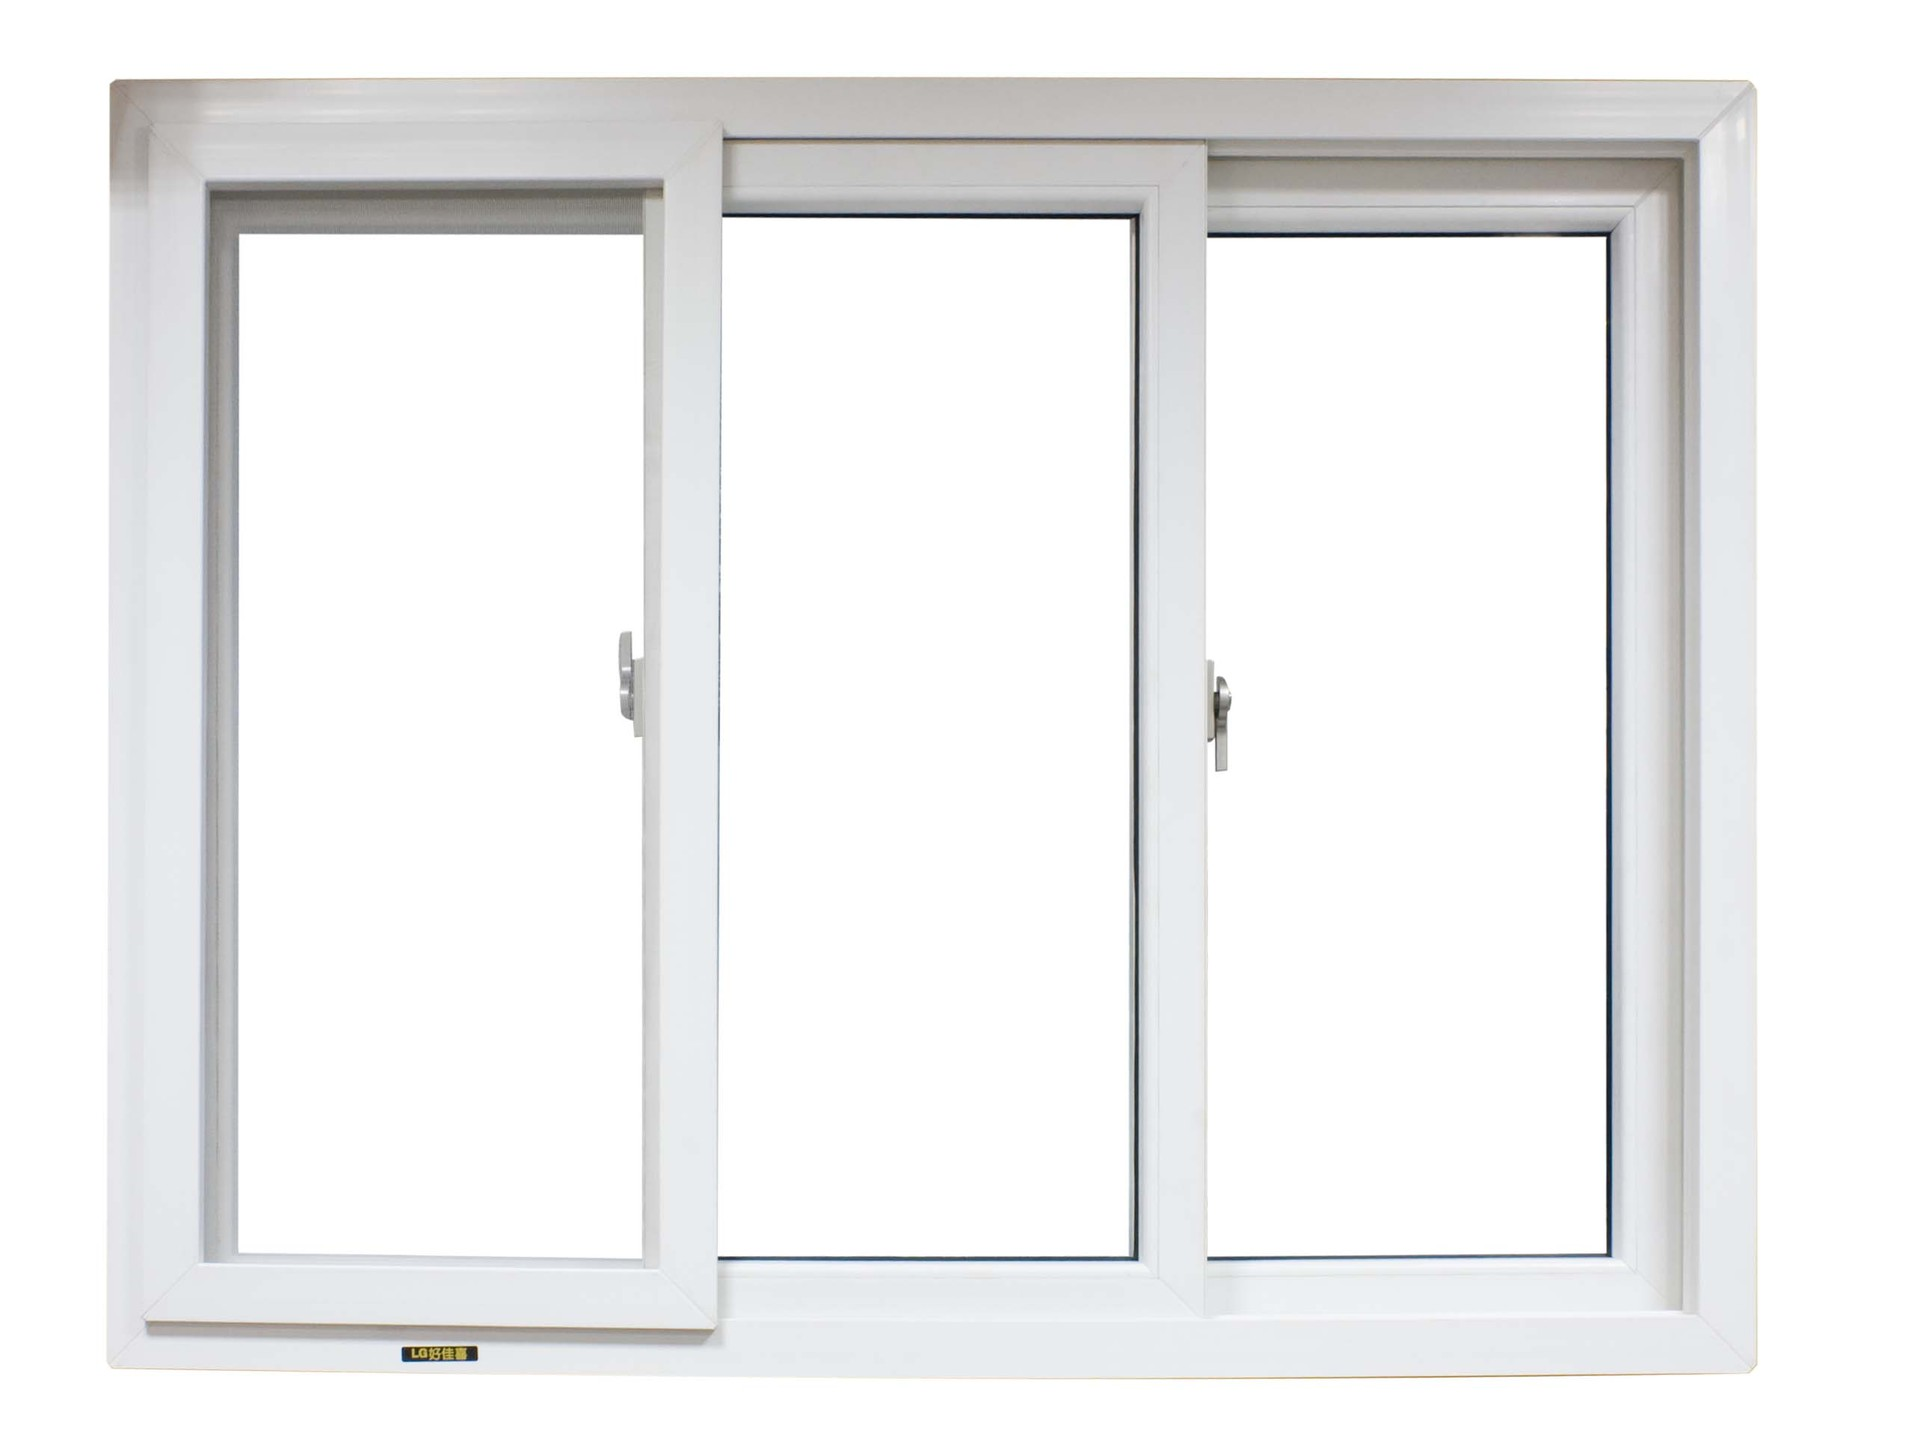 latest style high quality upvc sliding window for living room